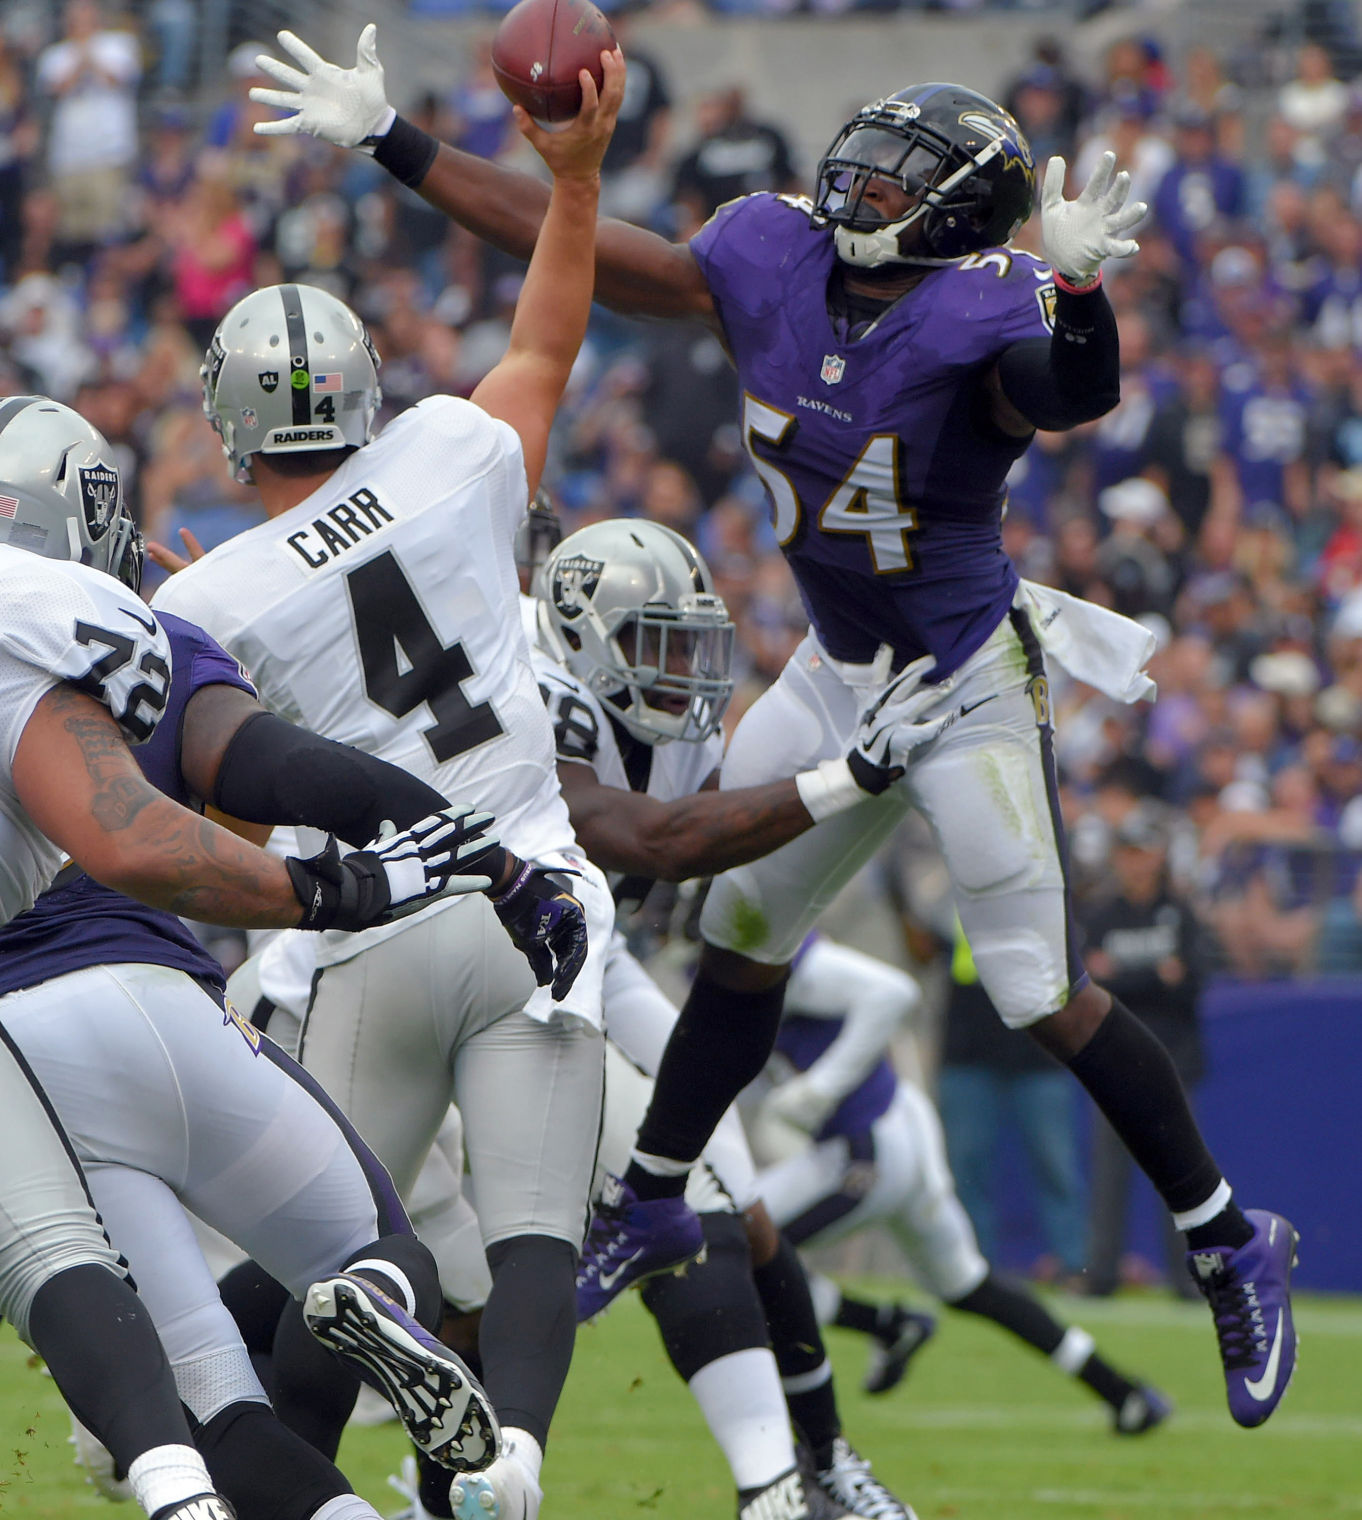 Oakland Raiders vs. Baltimore Ravens: Highlights, recap, final score